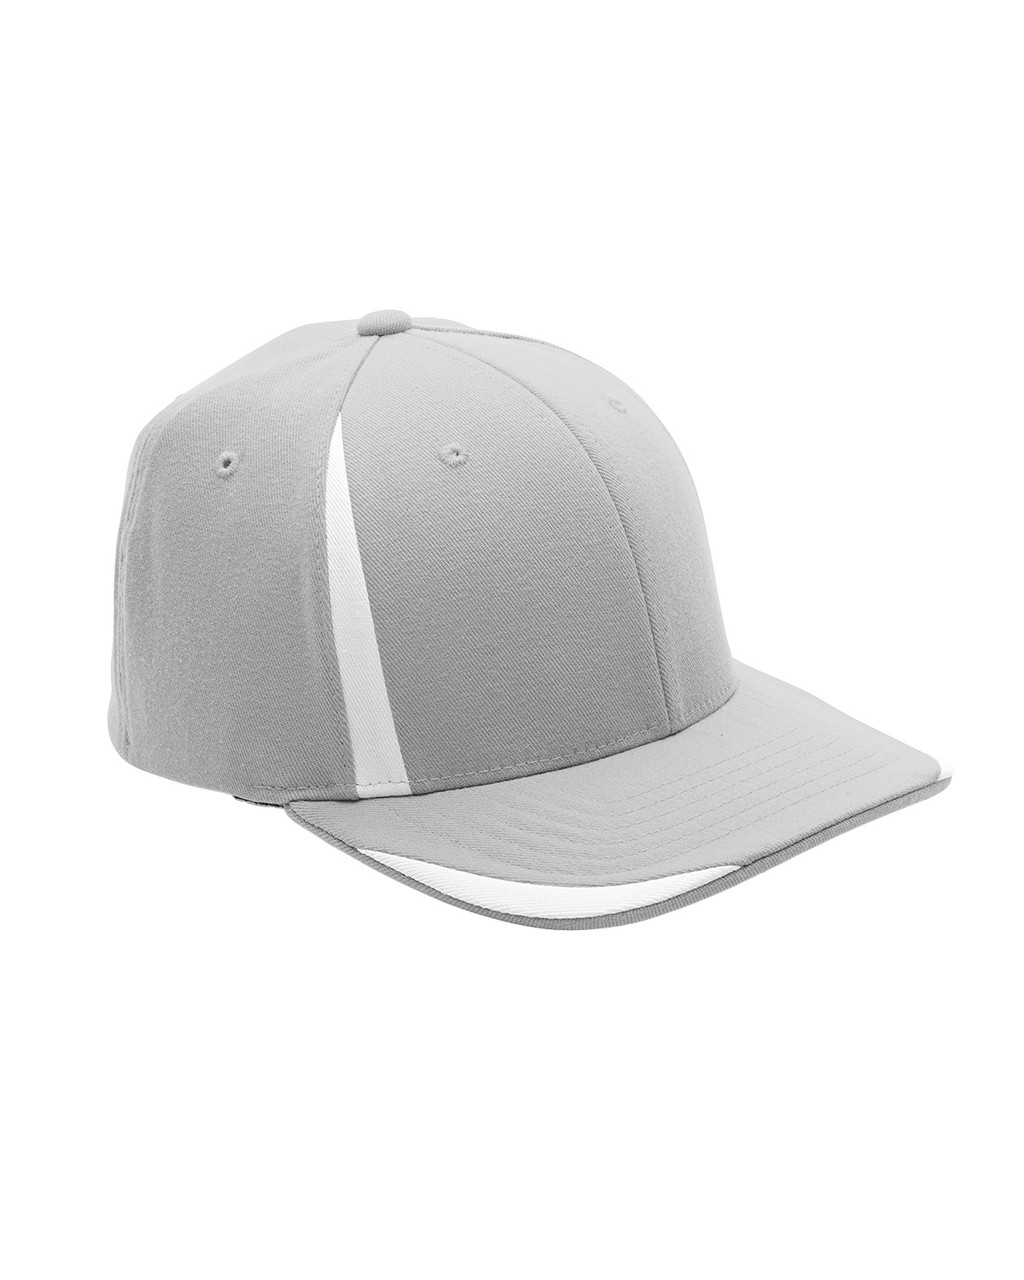 Silver/White - ATB102 Flexfit for Team 365 Pro-Formance Front Sweep Cap